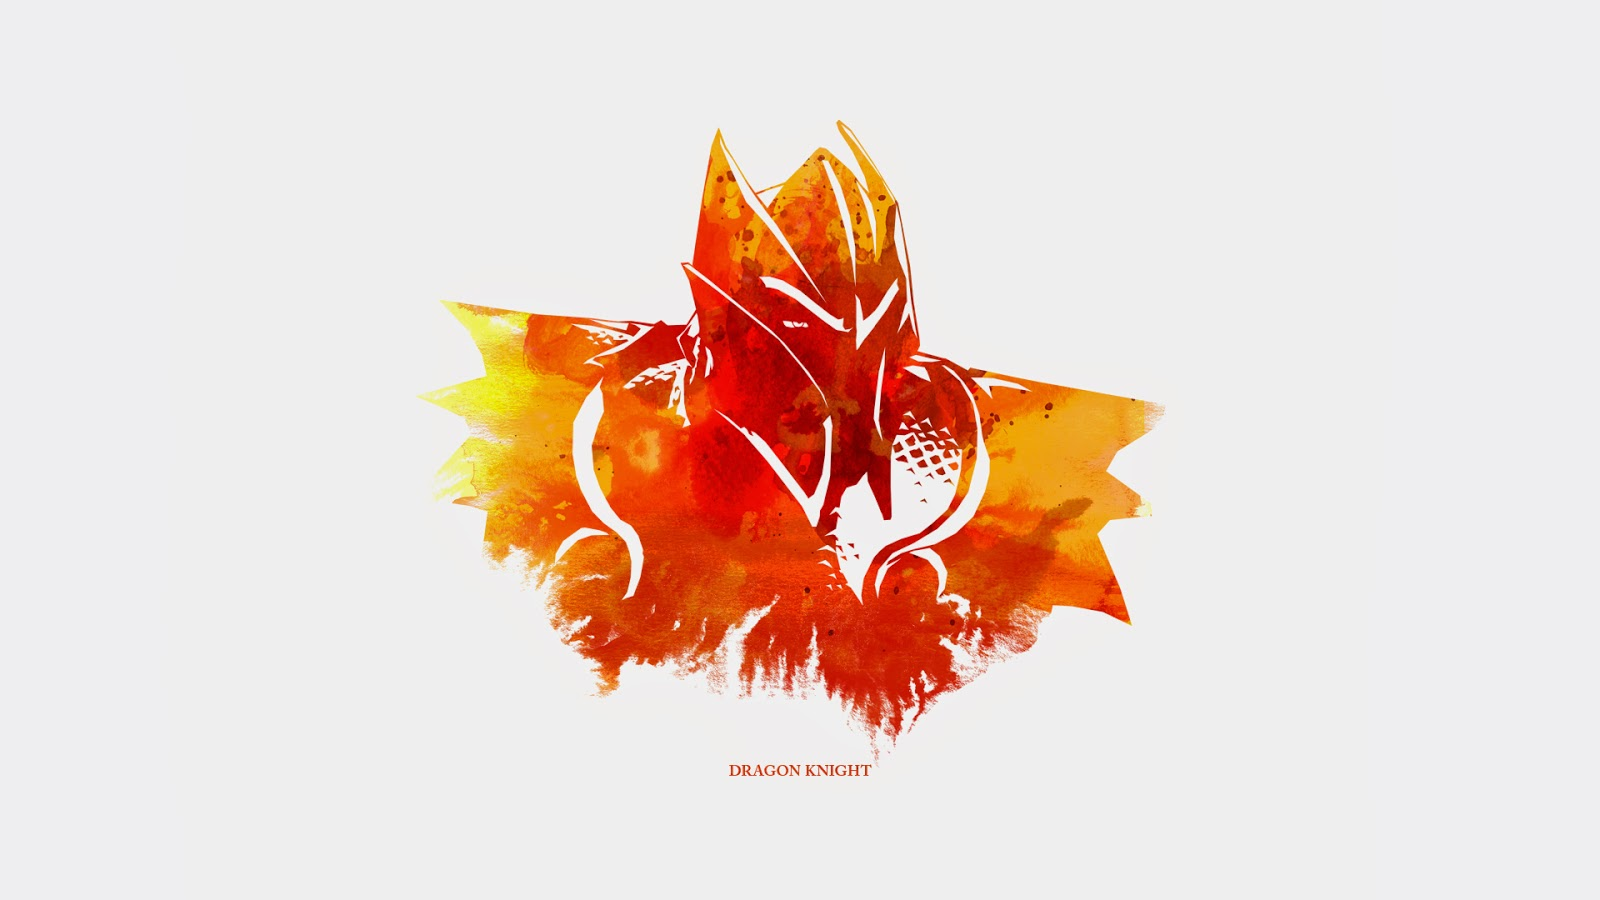 DotA 2 Fan Art Wallpaper full HD free download for Desktop